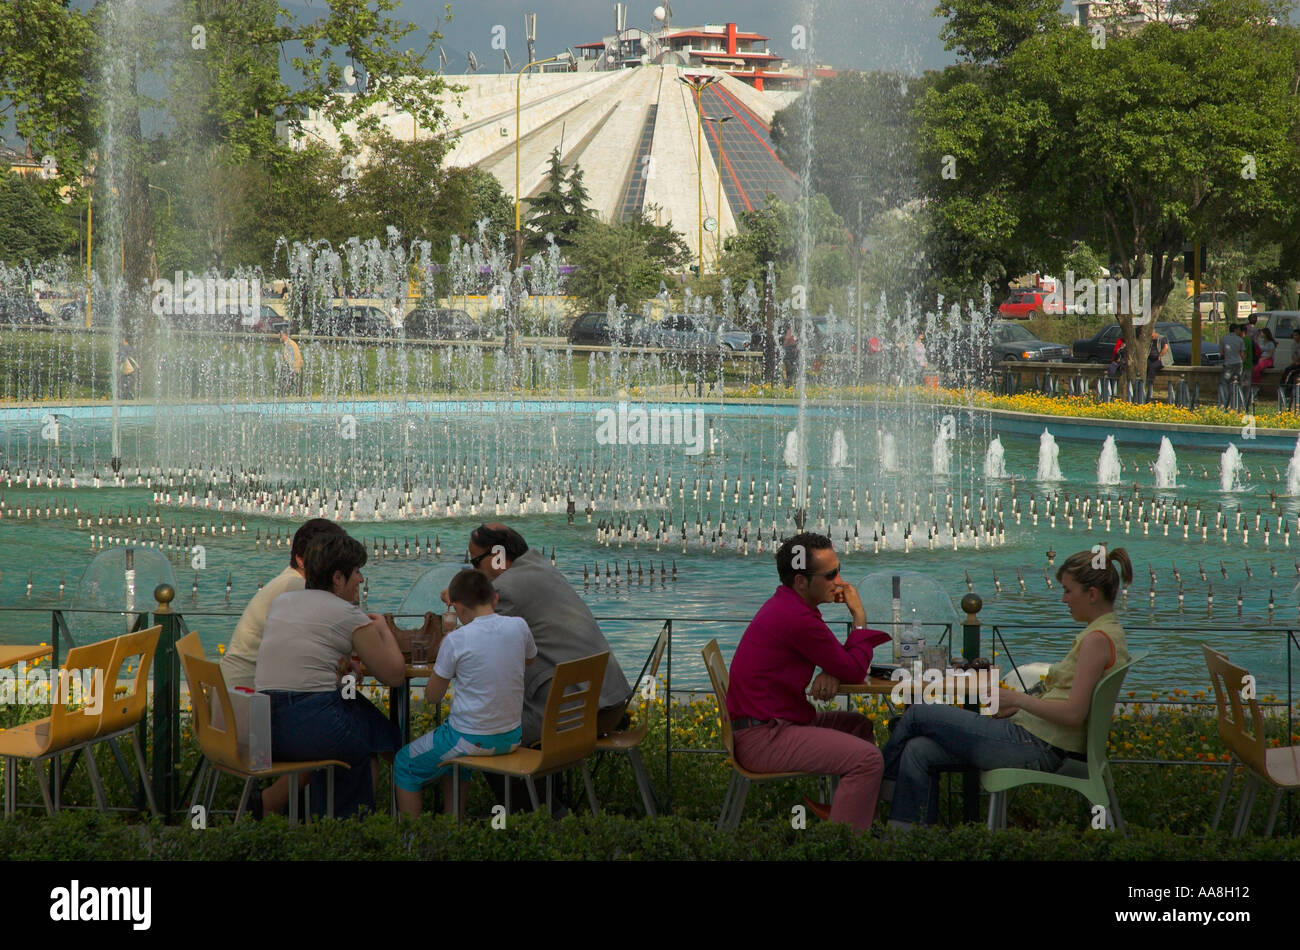 Albania Tirana Downtown Blloku cafe terrace with people and fountains in bkgd - Stock Image